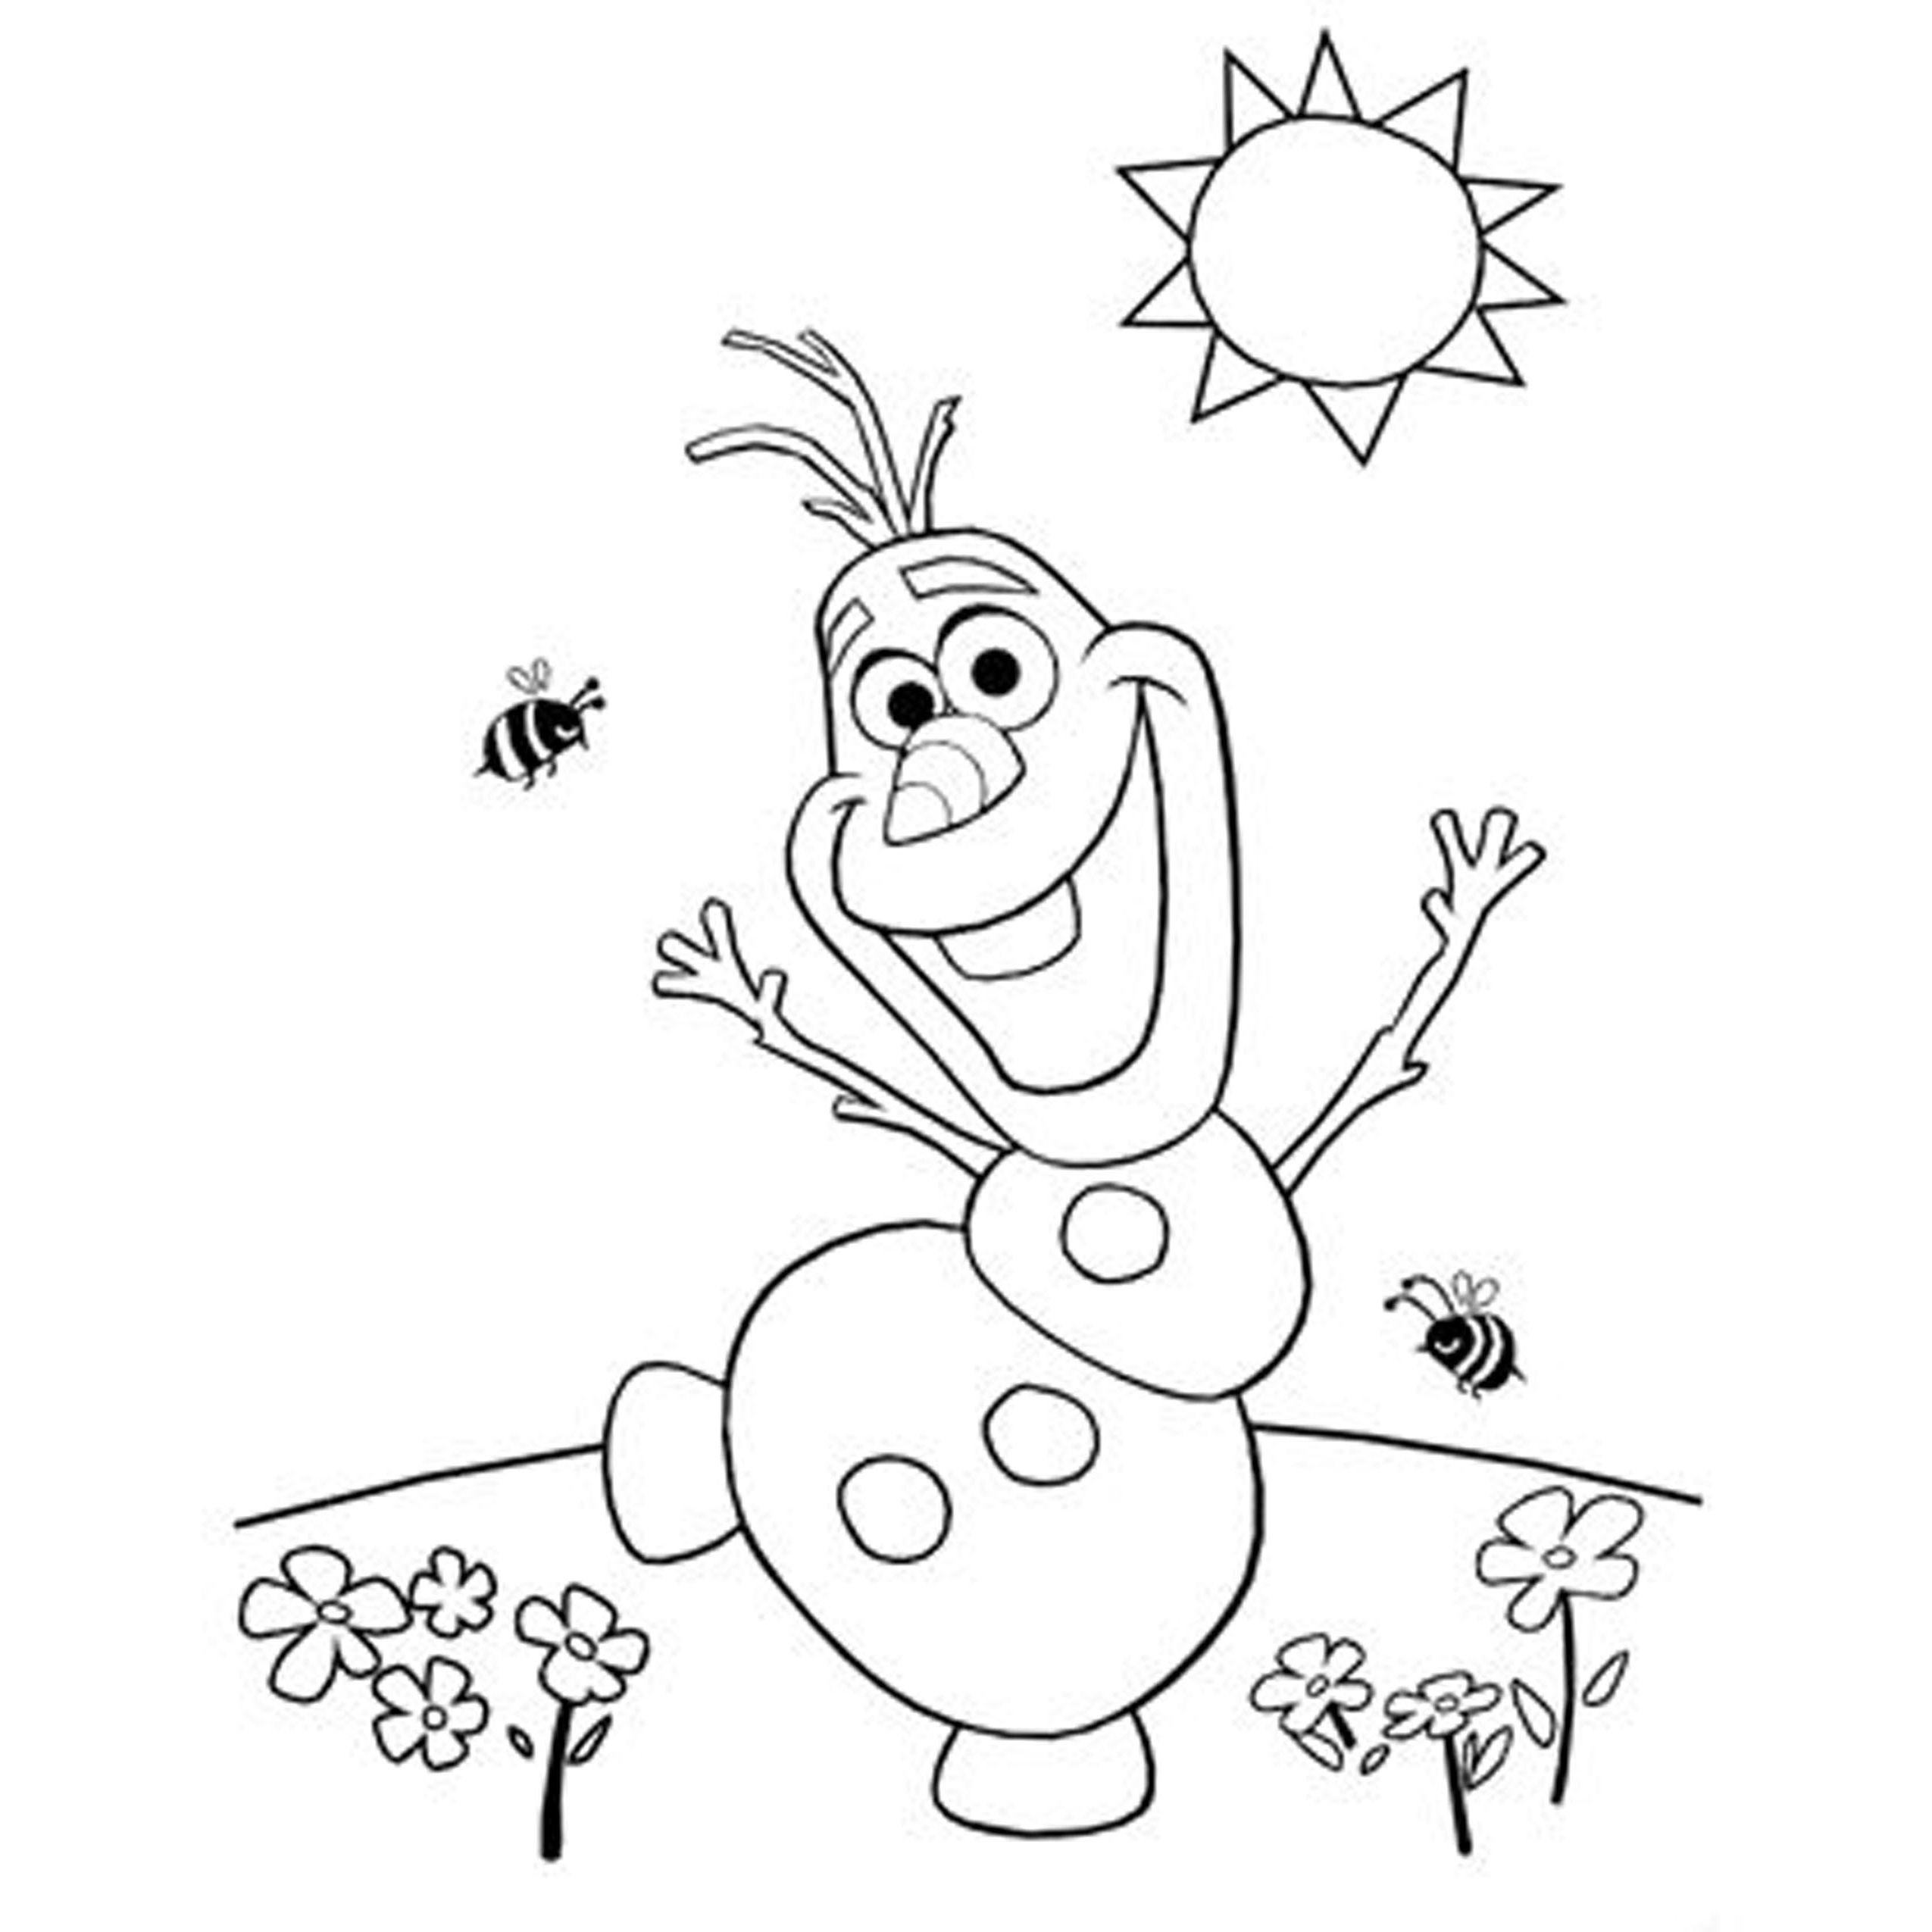 a coloring picture of frozen olaf from frozen drawing at getdrawings free download of frozen a picture coloring